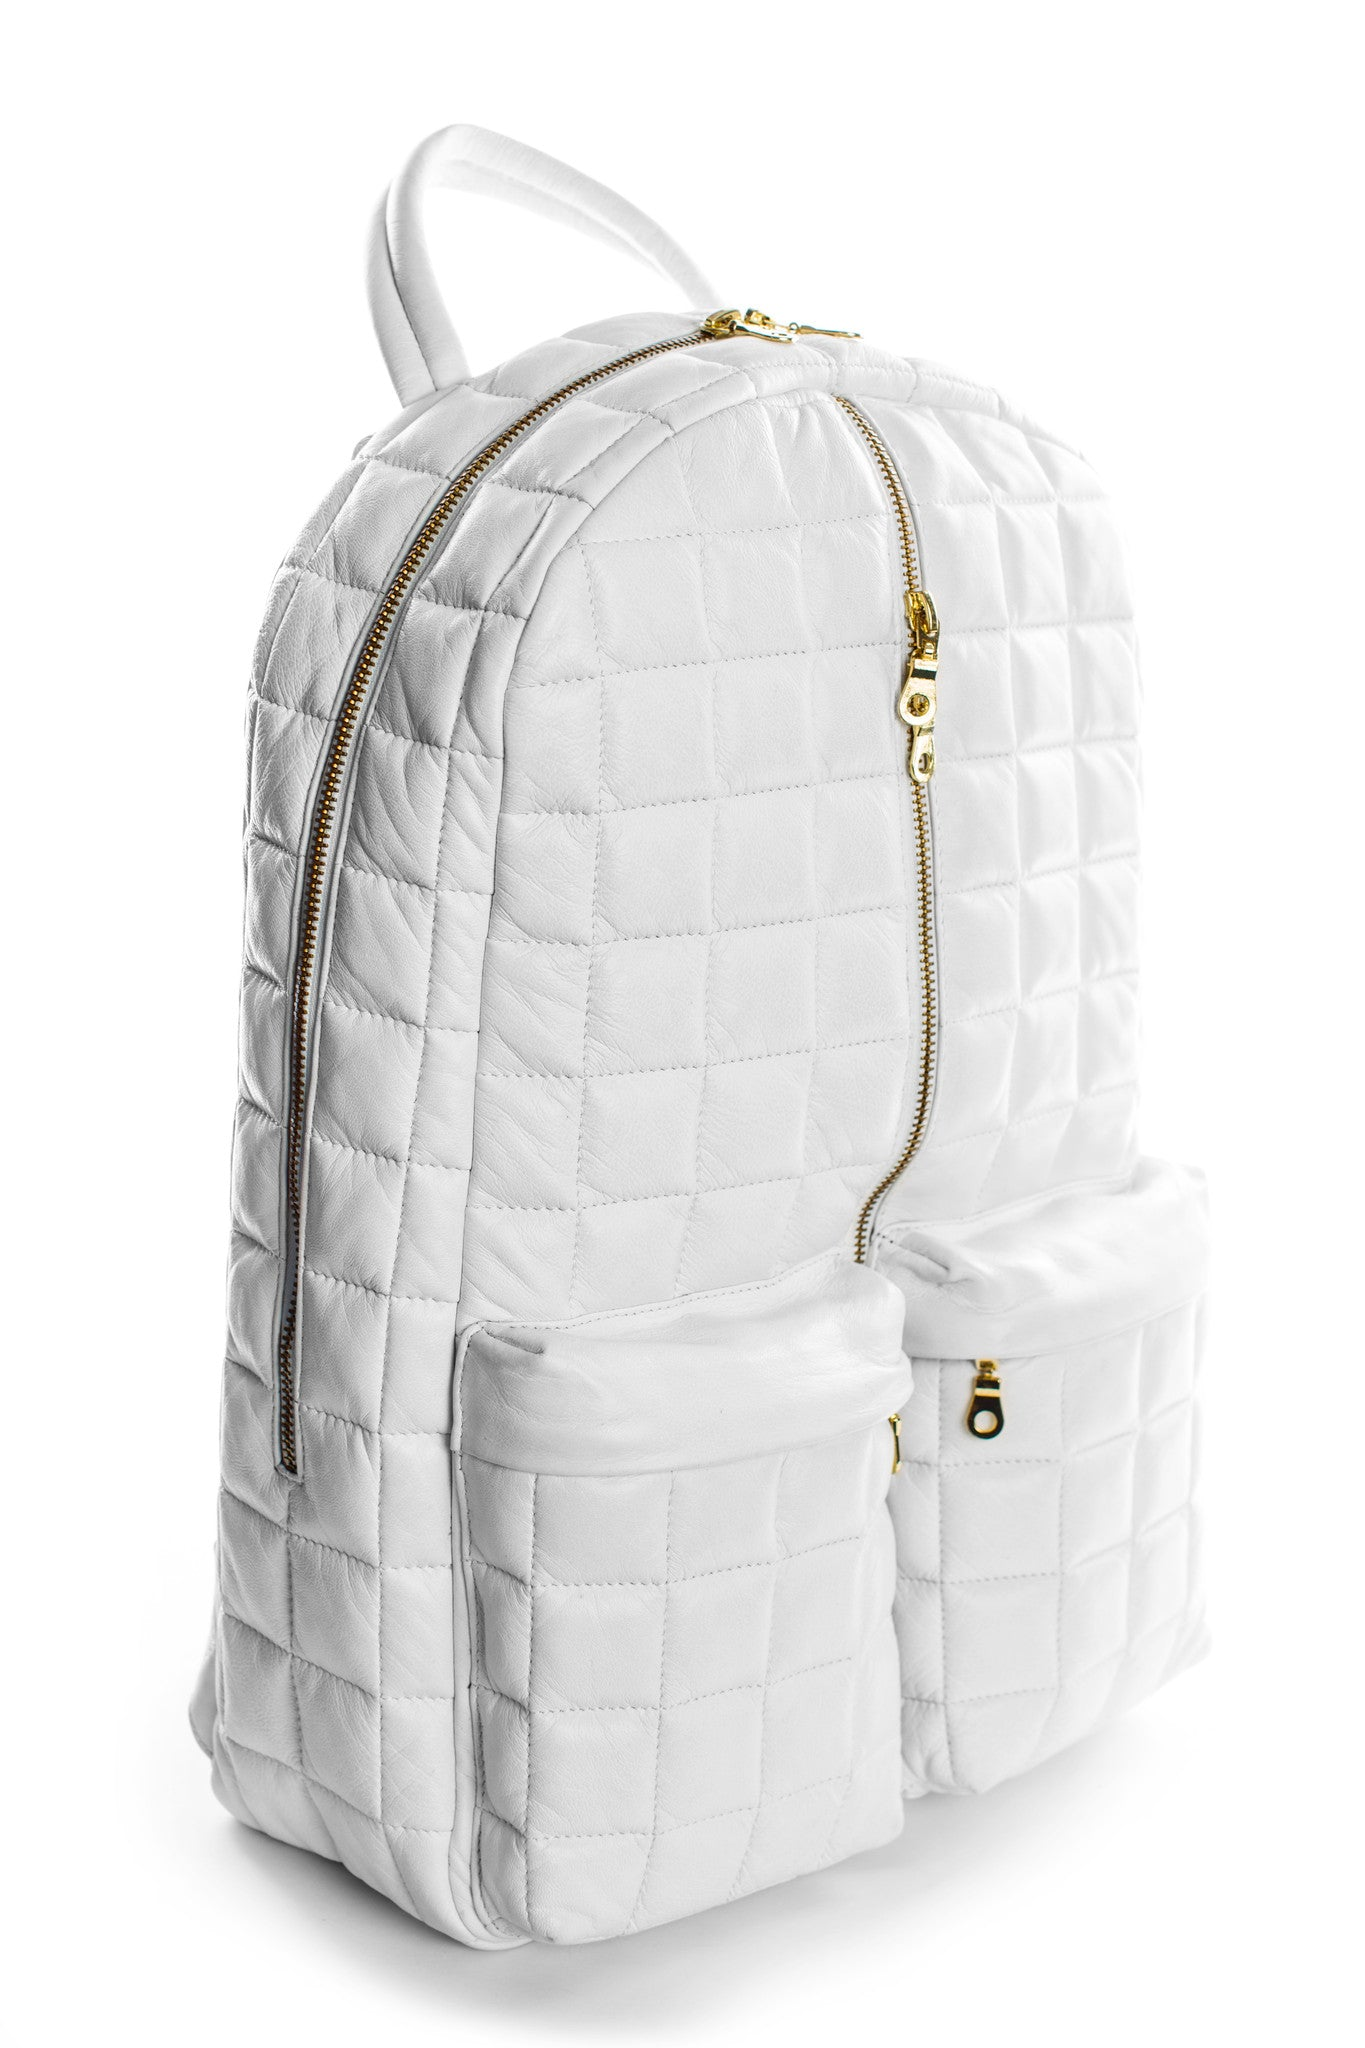 Marc 1 Backpack- Colgate White PRE ORDER [September 12th *Release*]